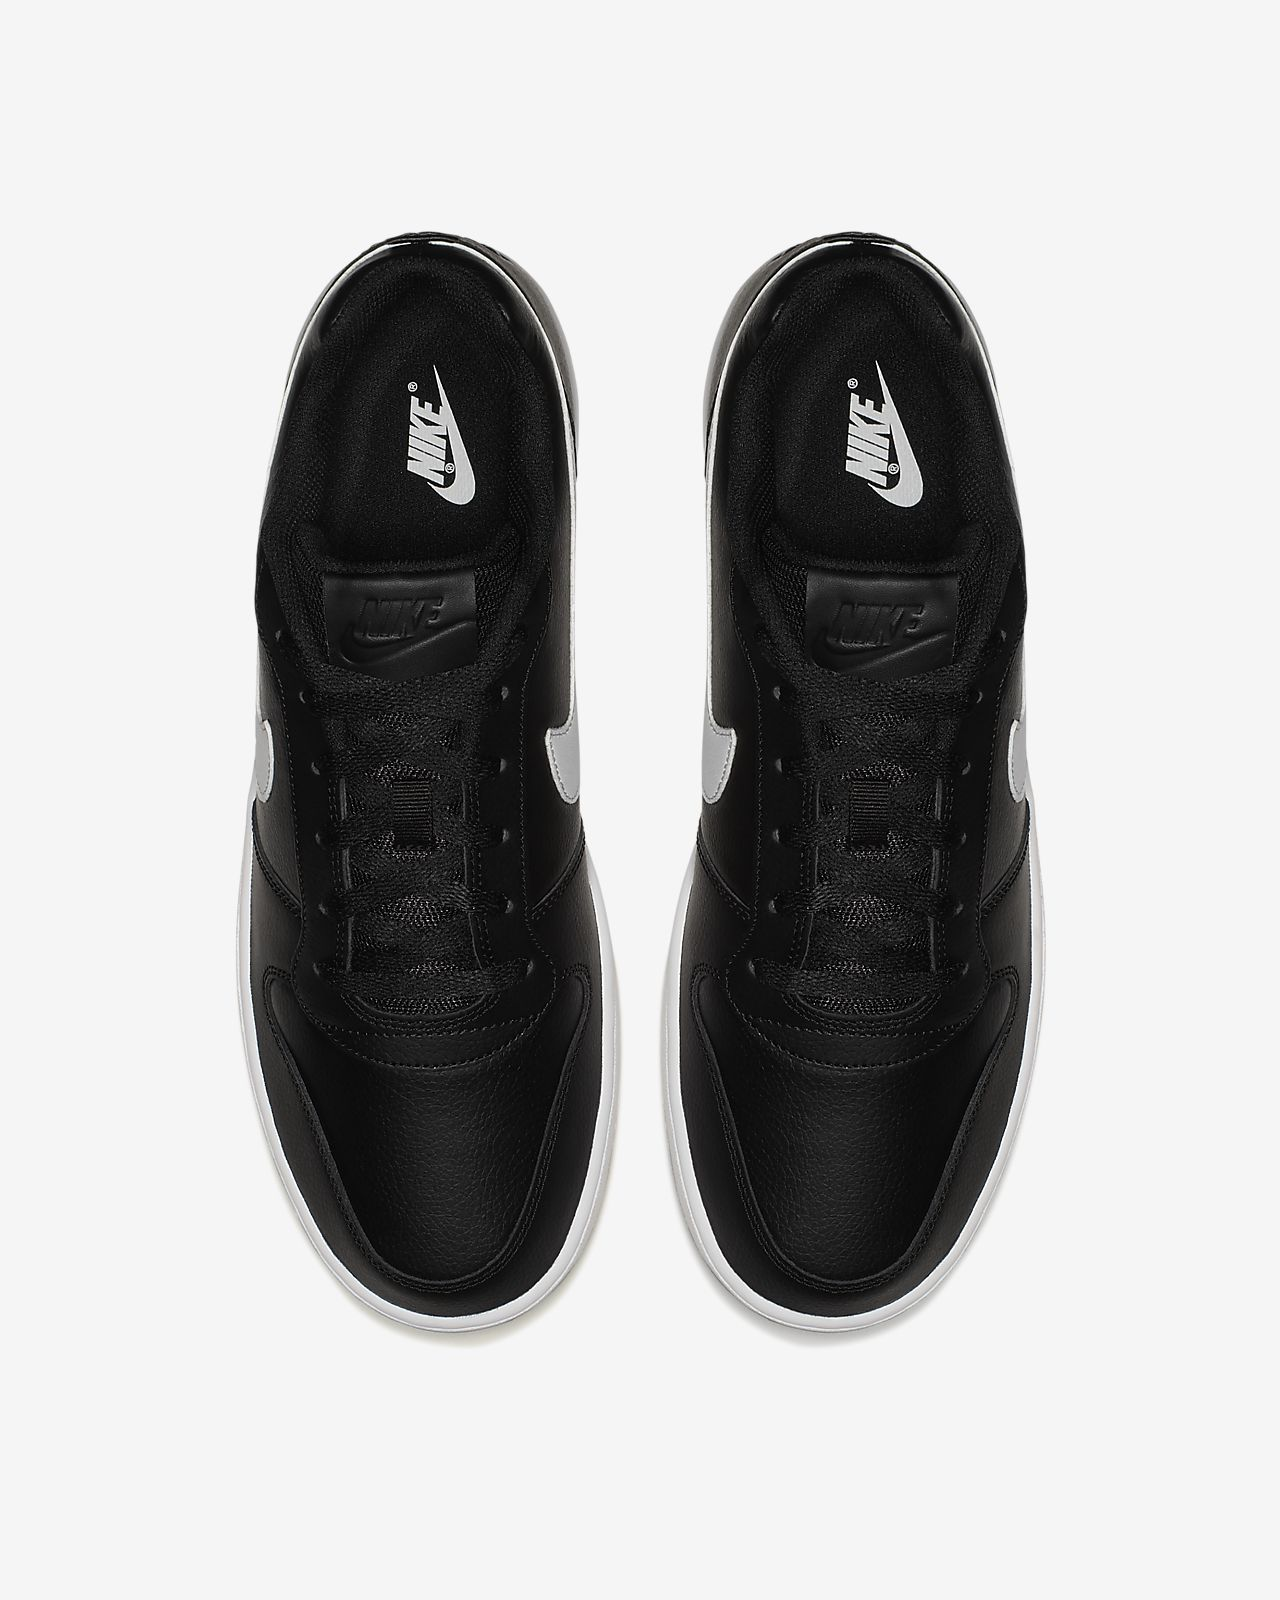 new product b6740 4e943 ... Nike Ebernon Low Mens Shoe